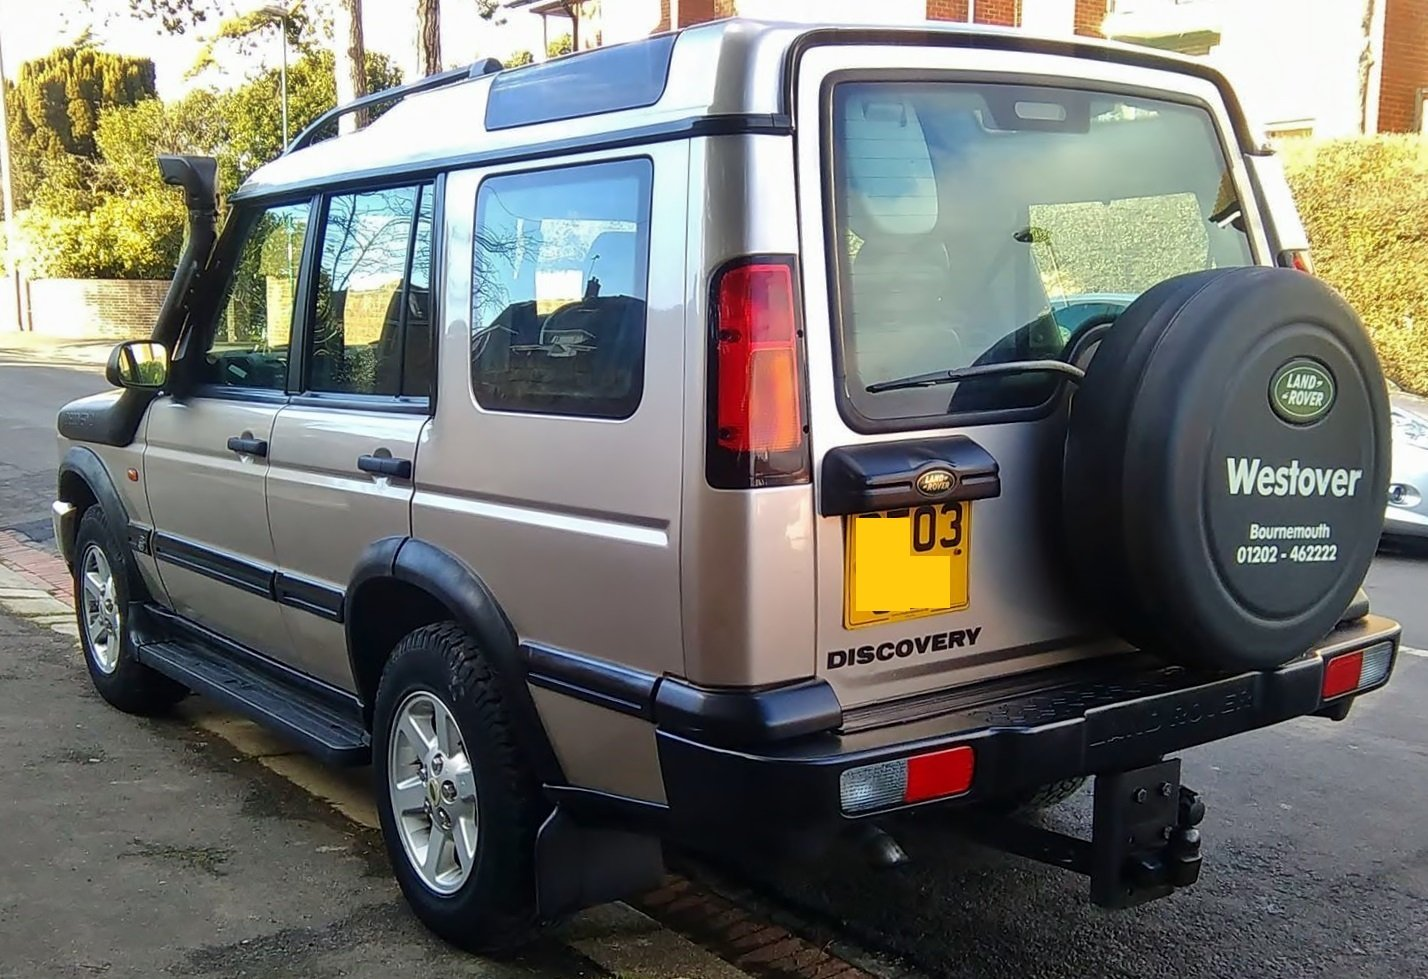 2003 Discovery TD5 PX SWAP Car 4x4 Nissan Toyota Honda For Sale (picture 4 of 6)